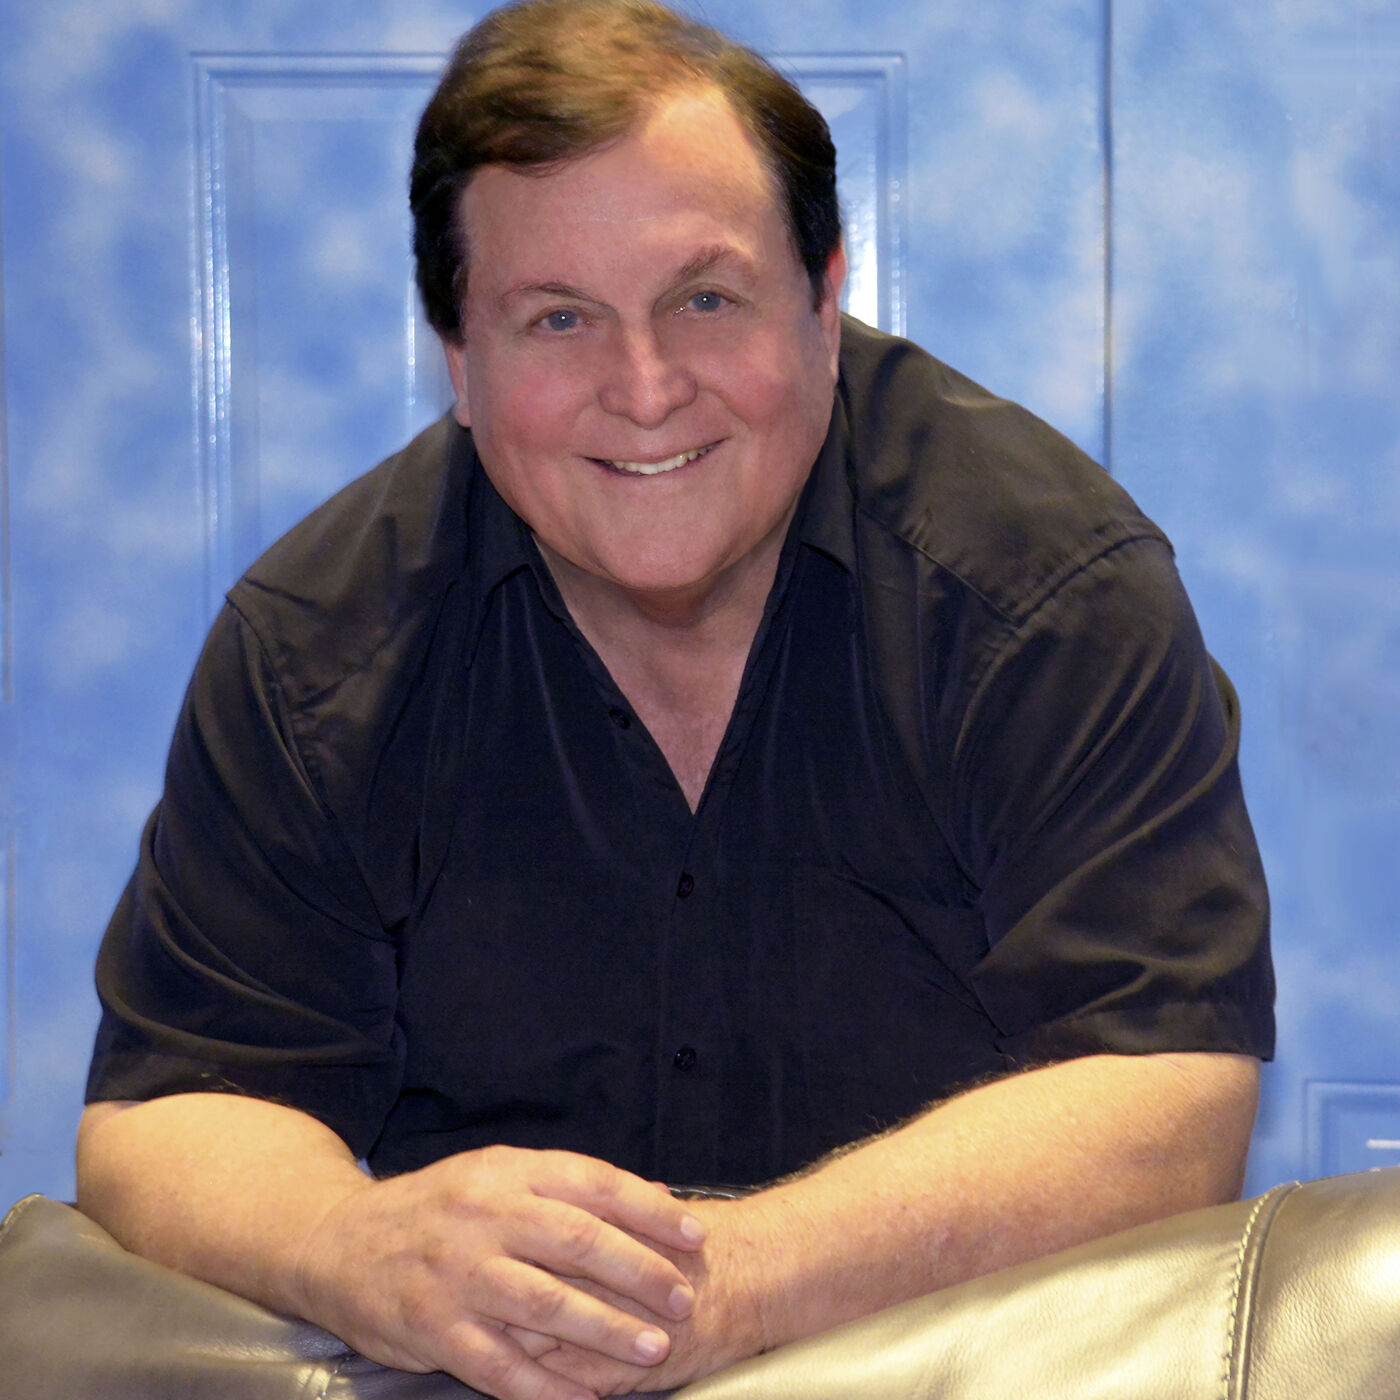 #21 -  Behind The Scenes with Robin (and Batman) - a candid conversation with Burt Ward